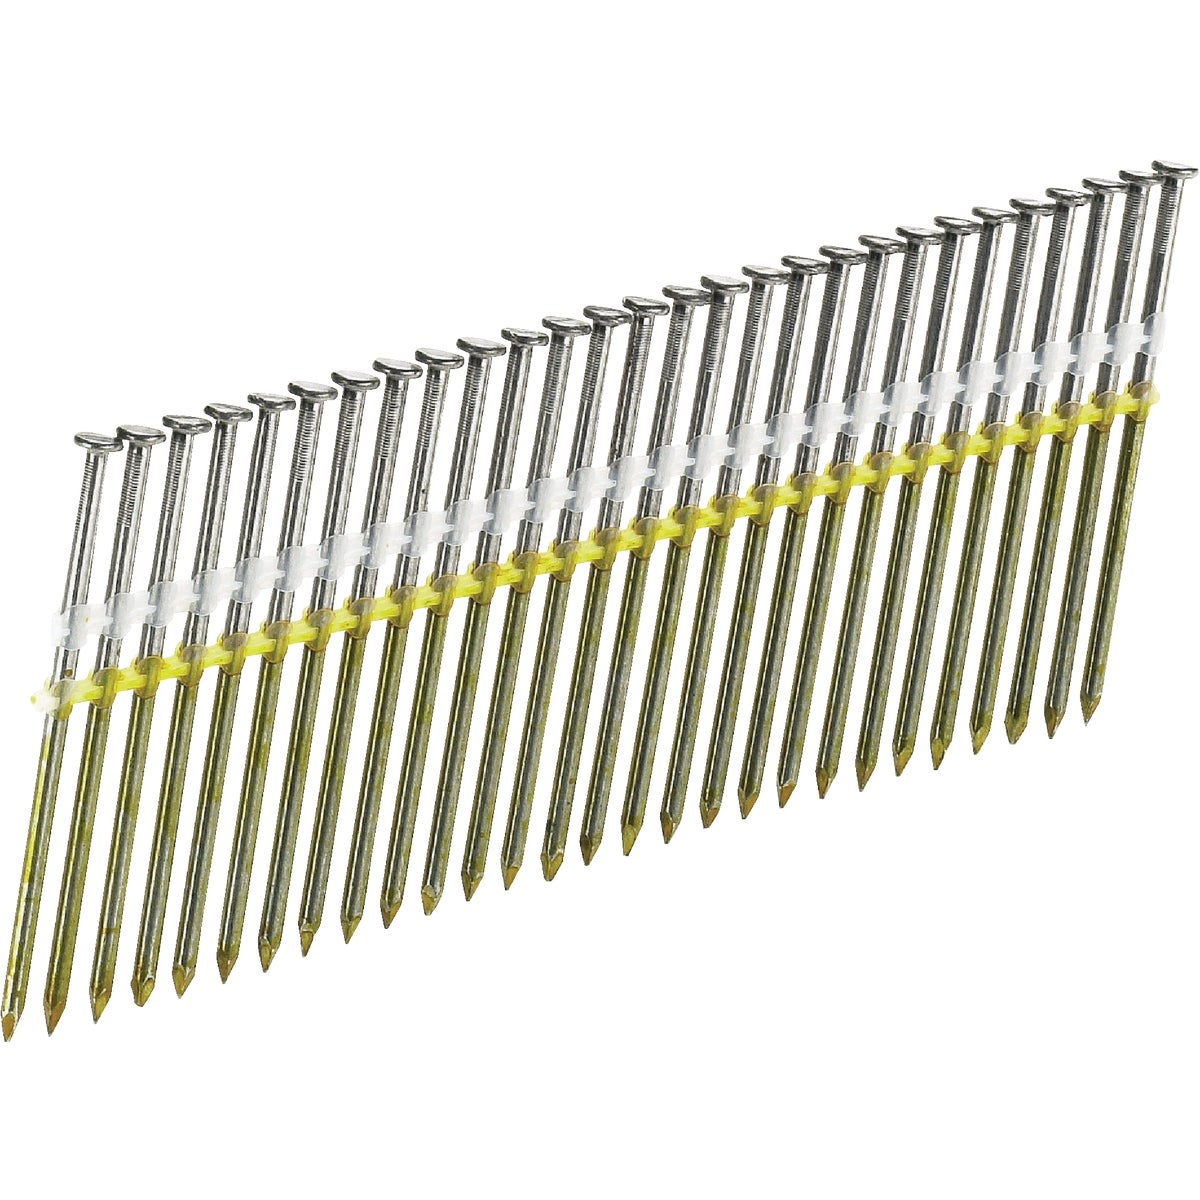 "3-1/2"" FRAMING NAIL - KD29APBSN by Senco Brands"